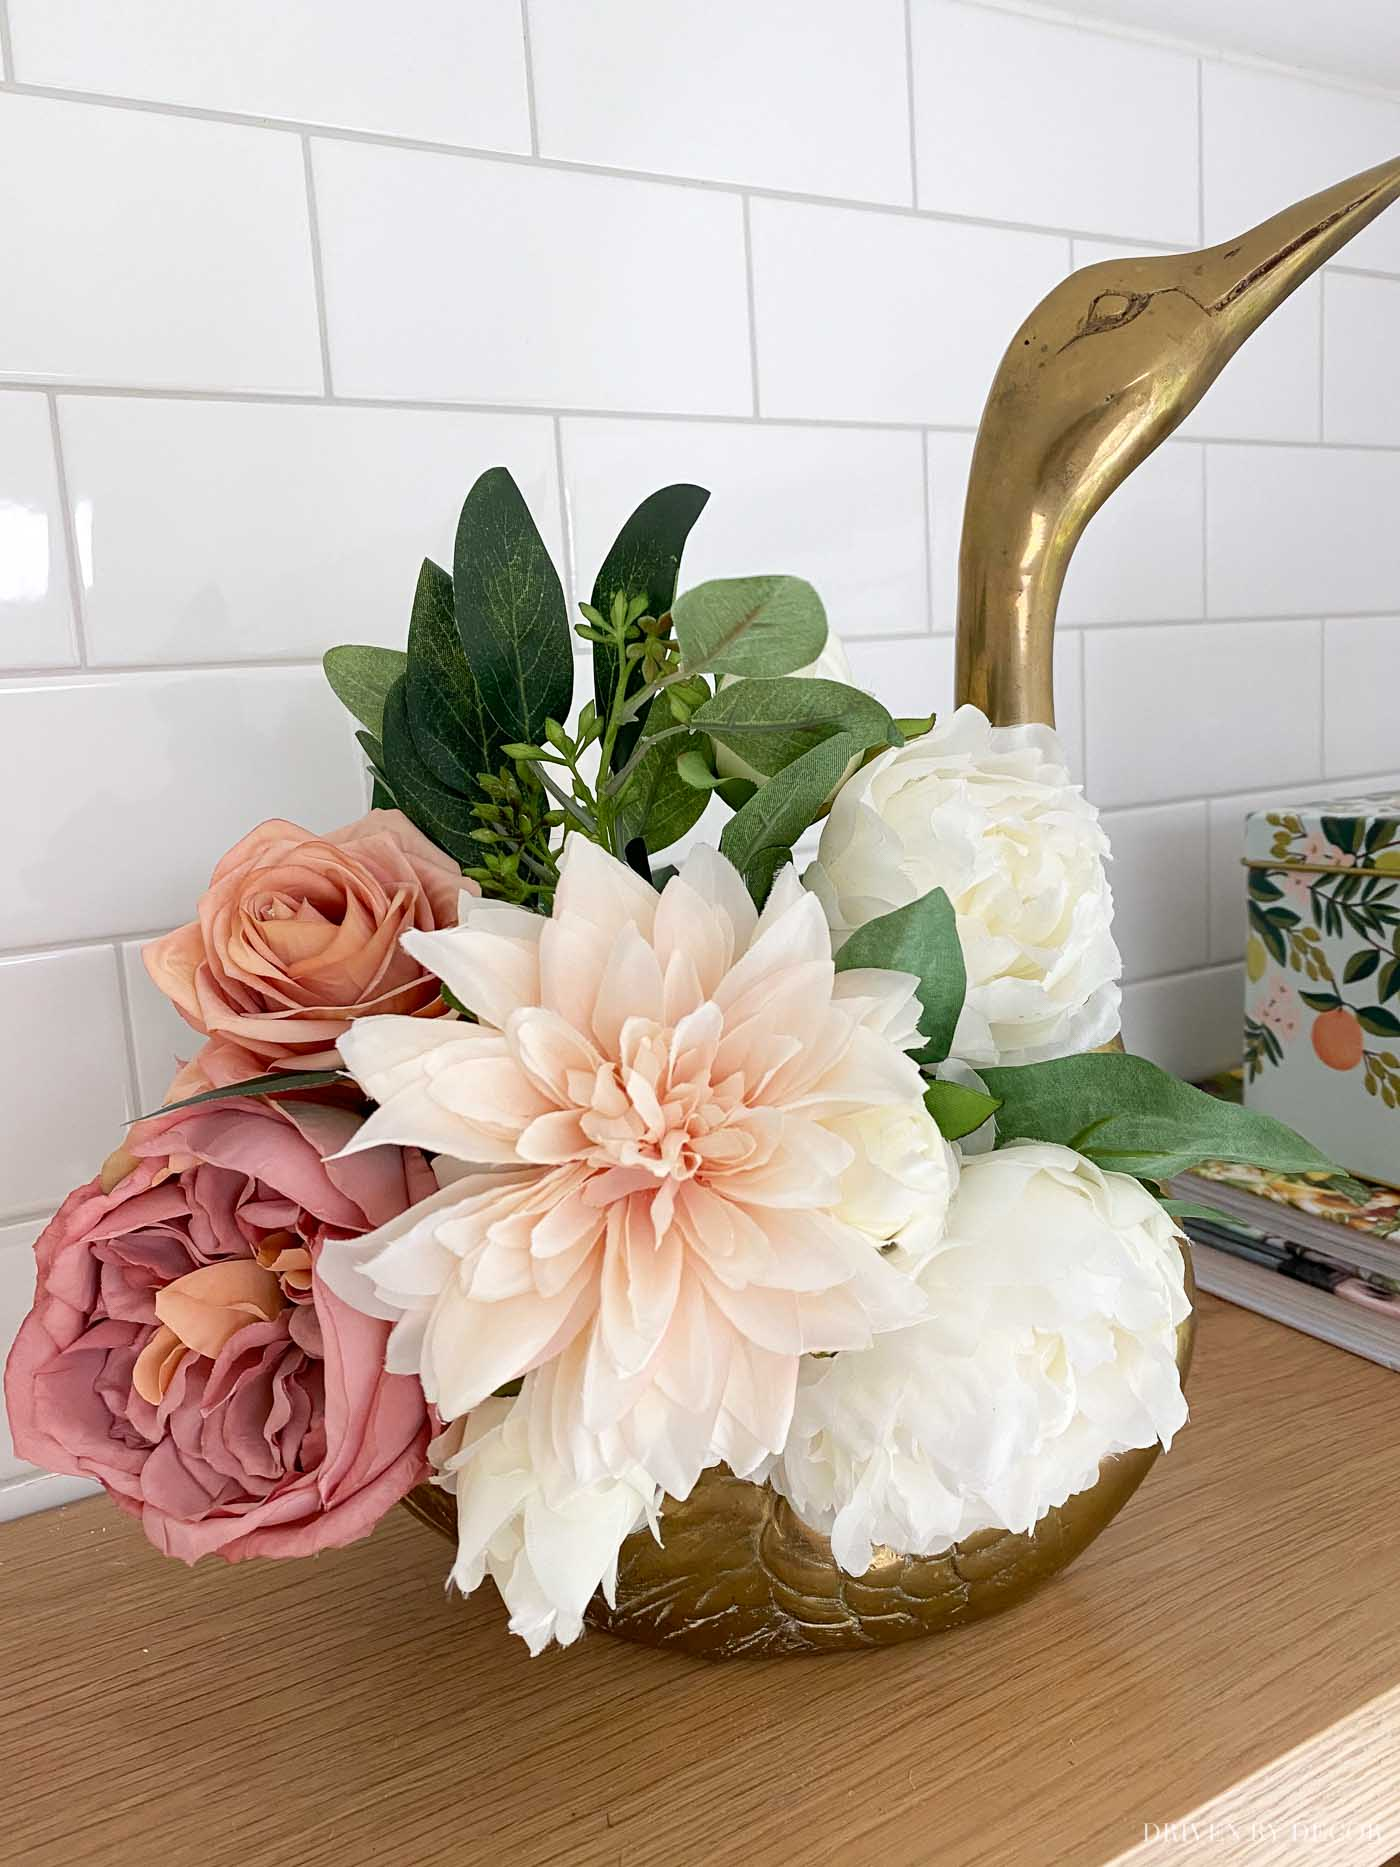 Faux fall florals filling this beautiful swan planter as part of our kitchen fall decor!